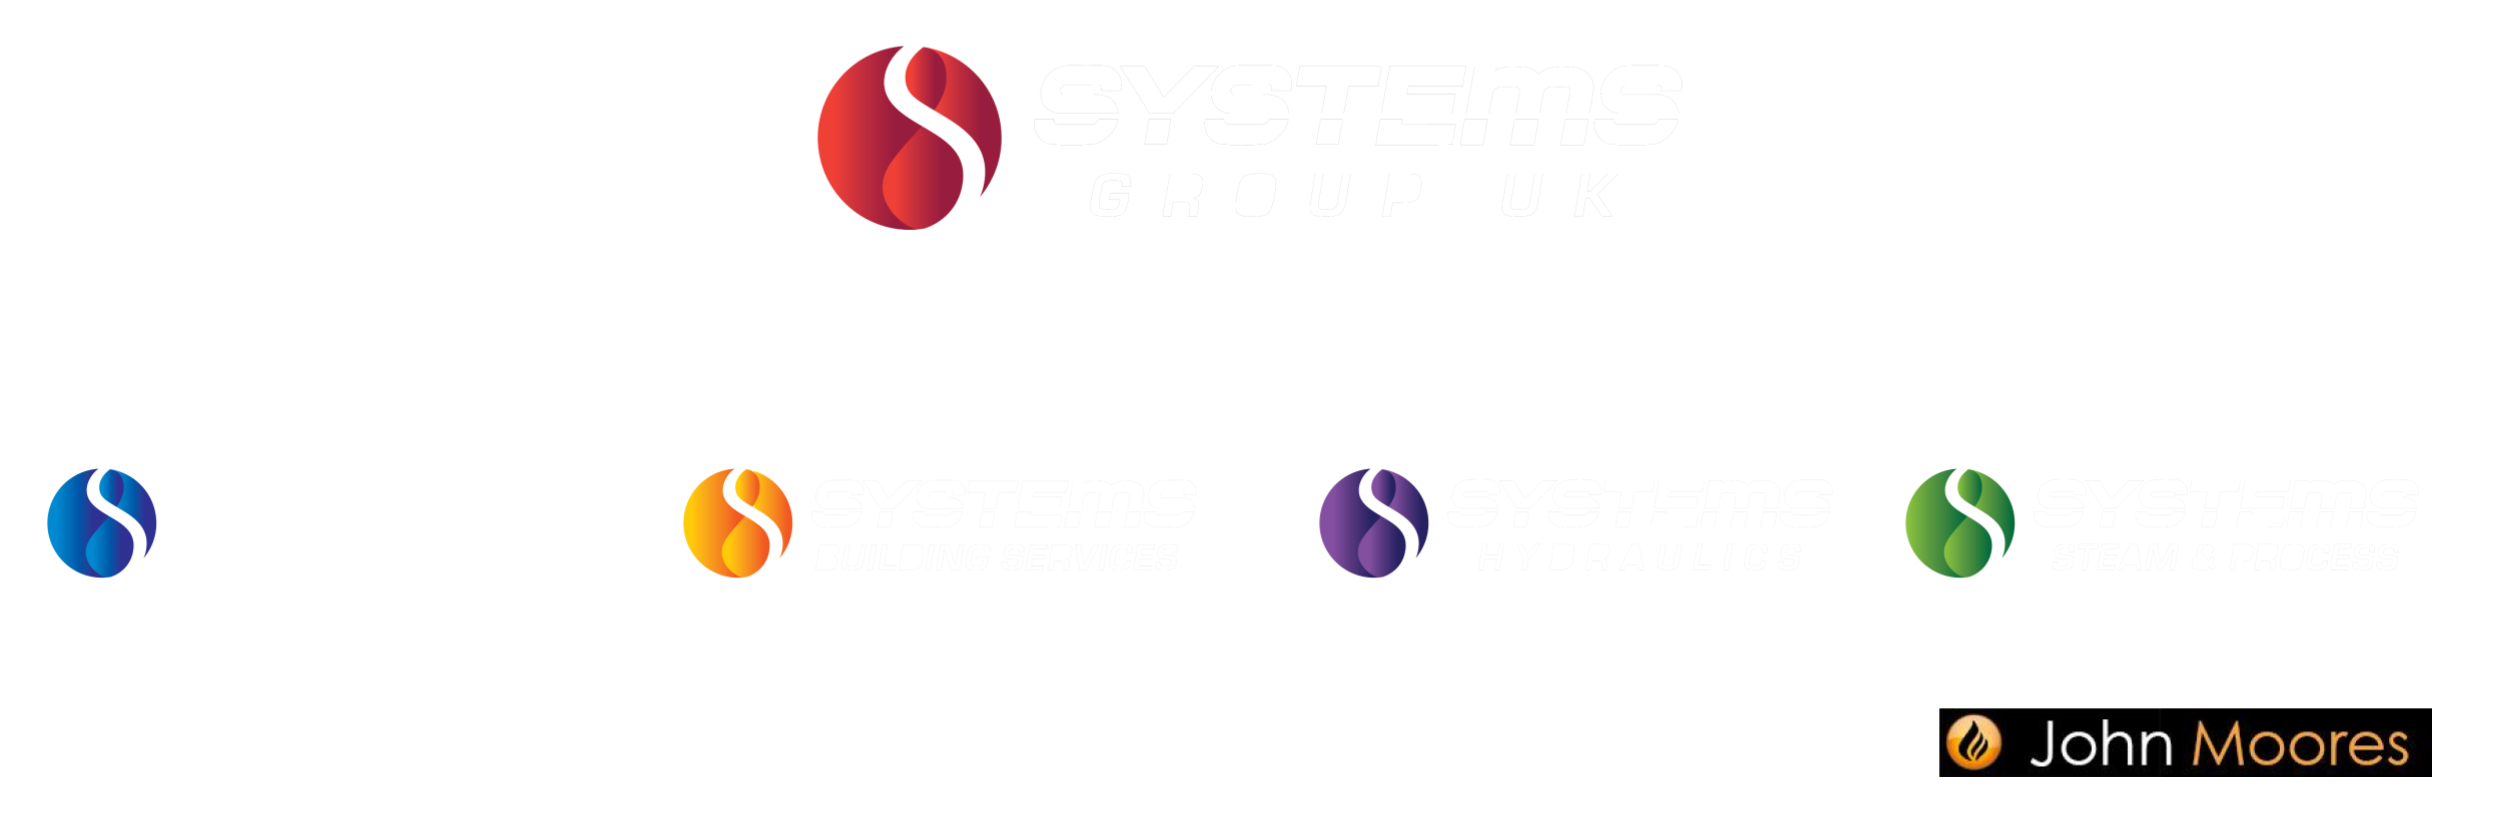 Systems-Organisation-2